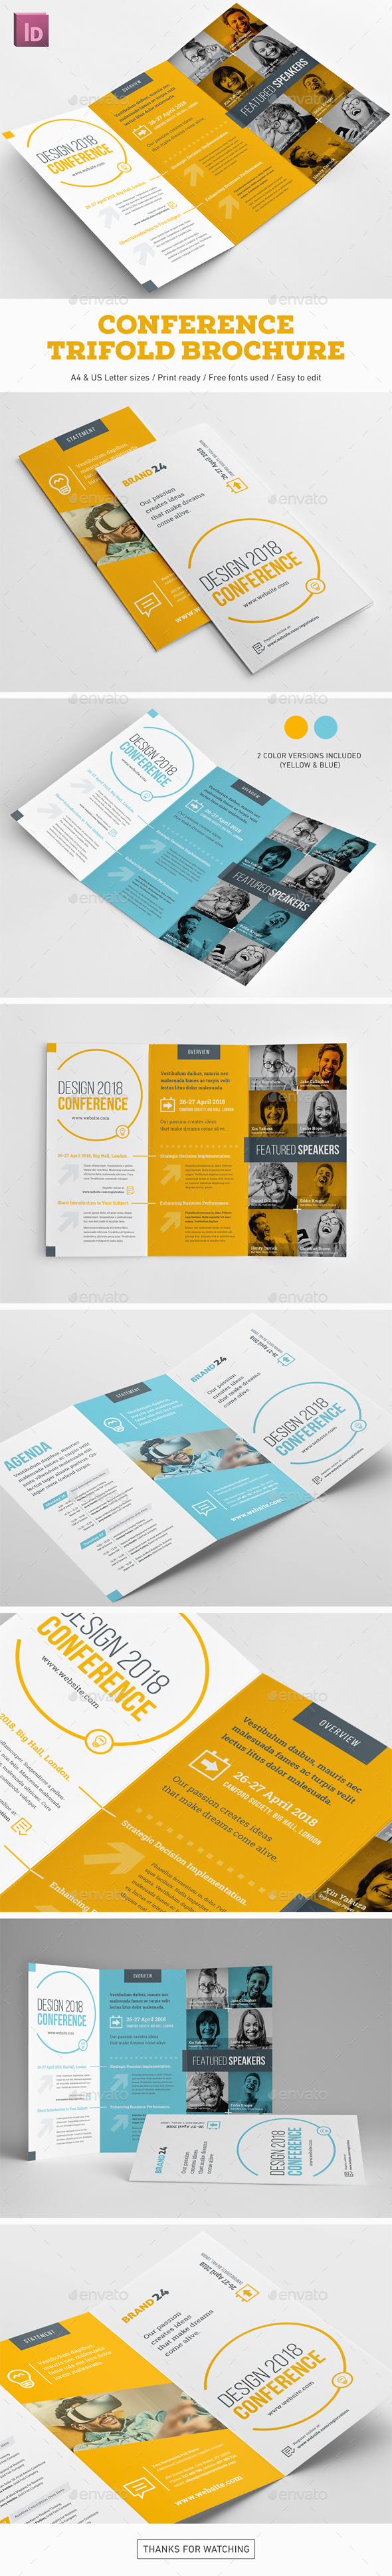 Conference Trifold Brochure - Corporate Brochures